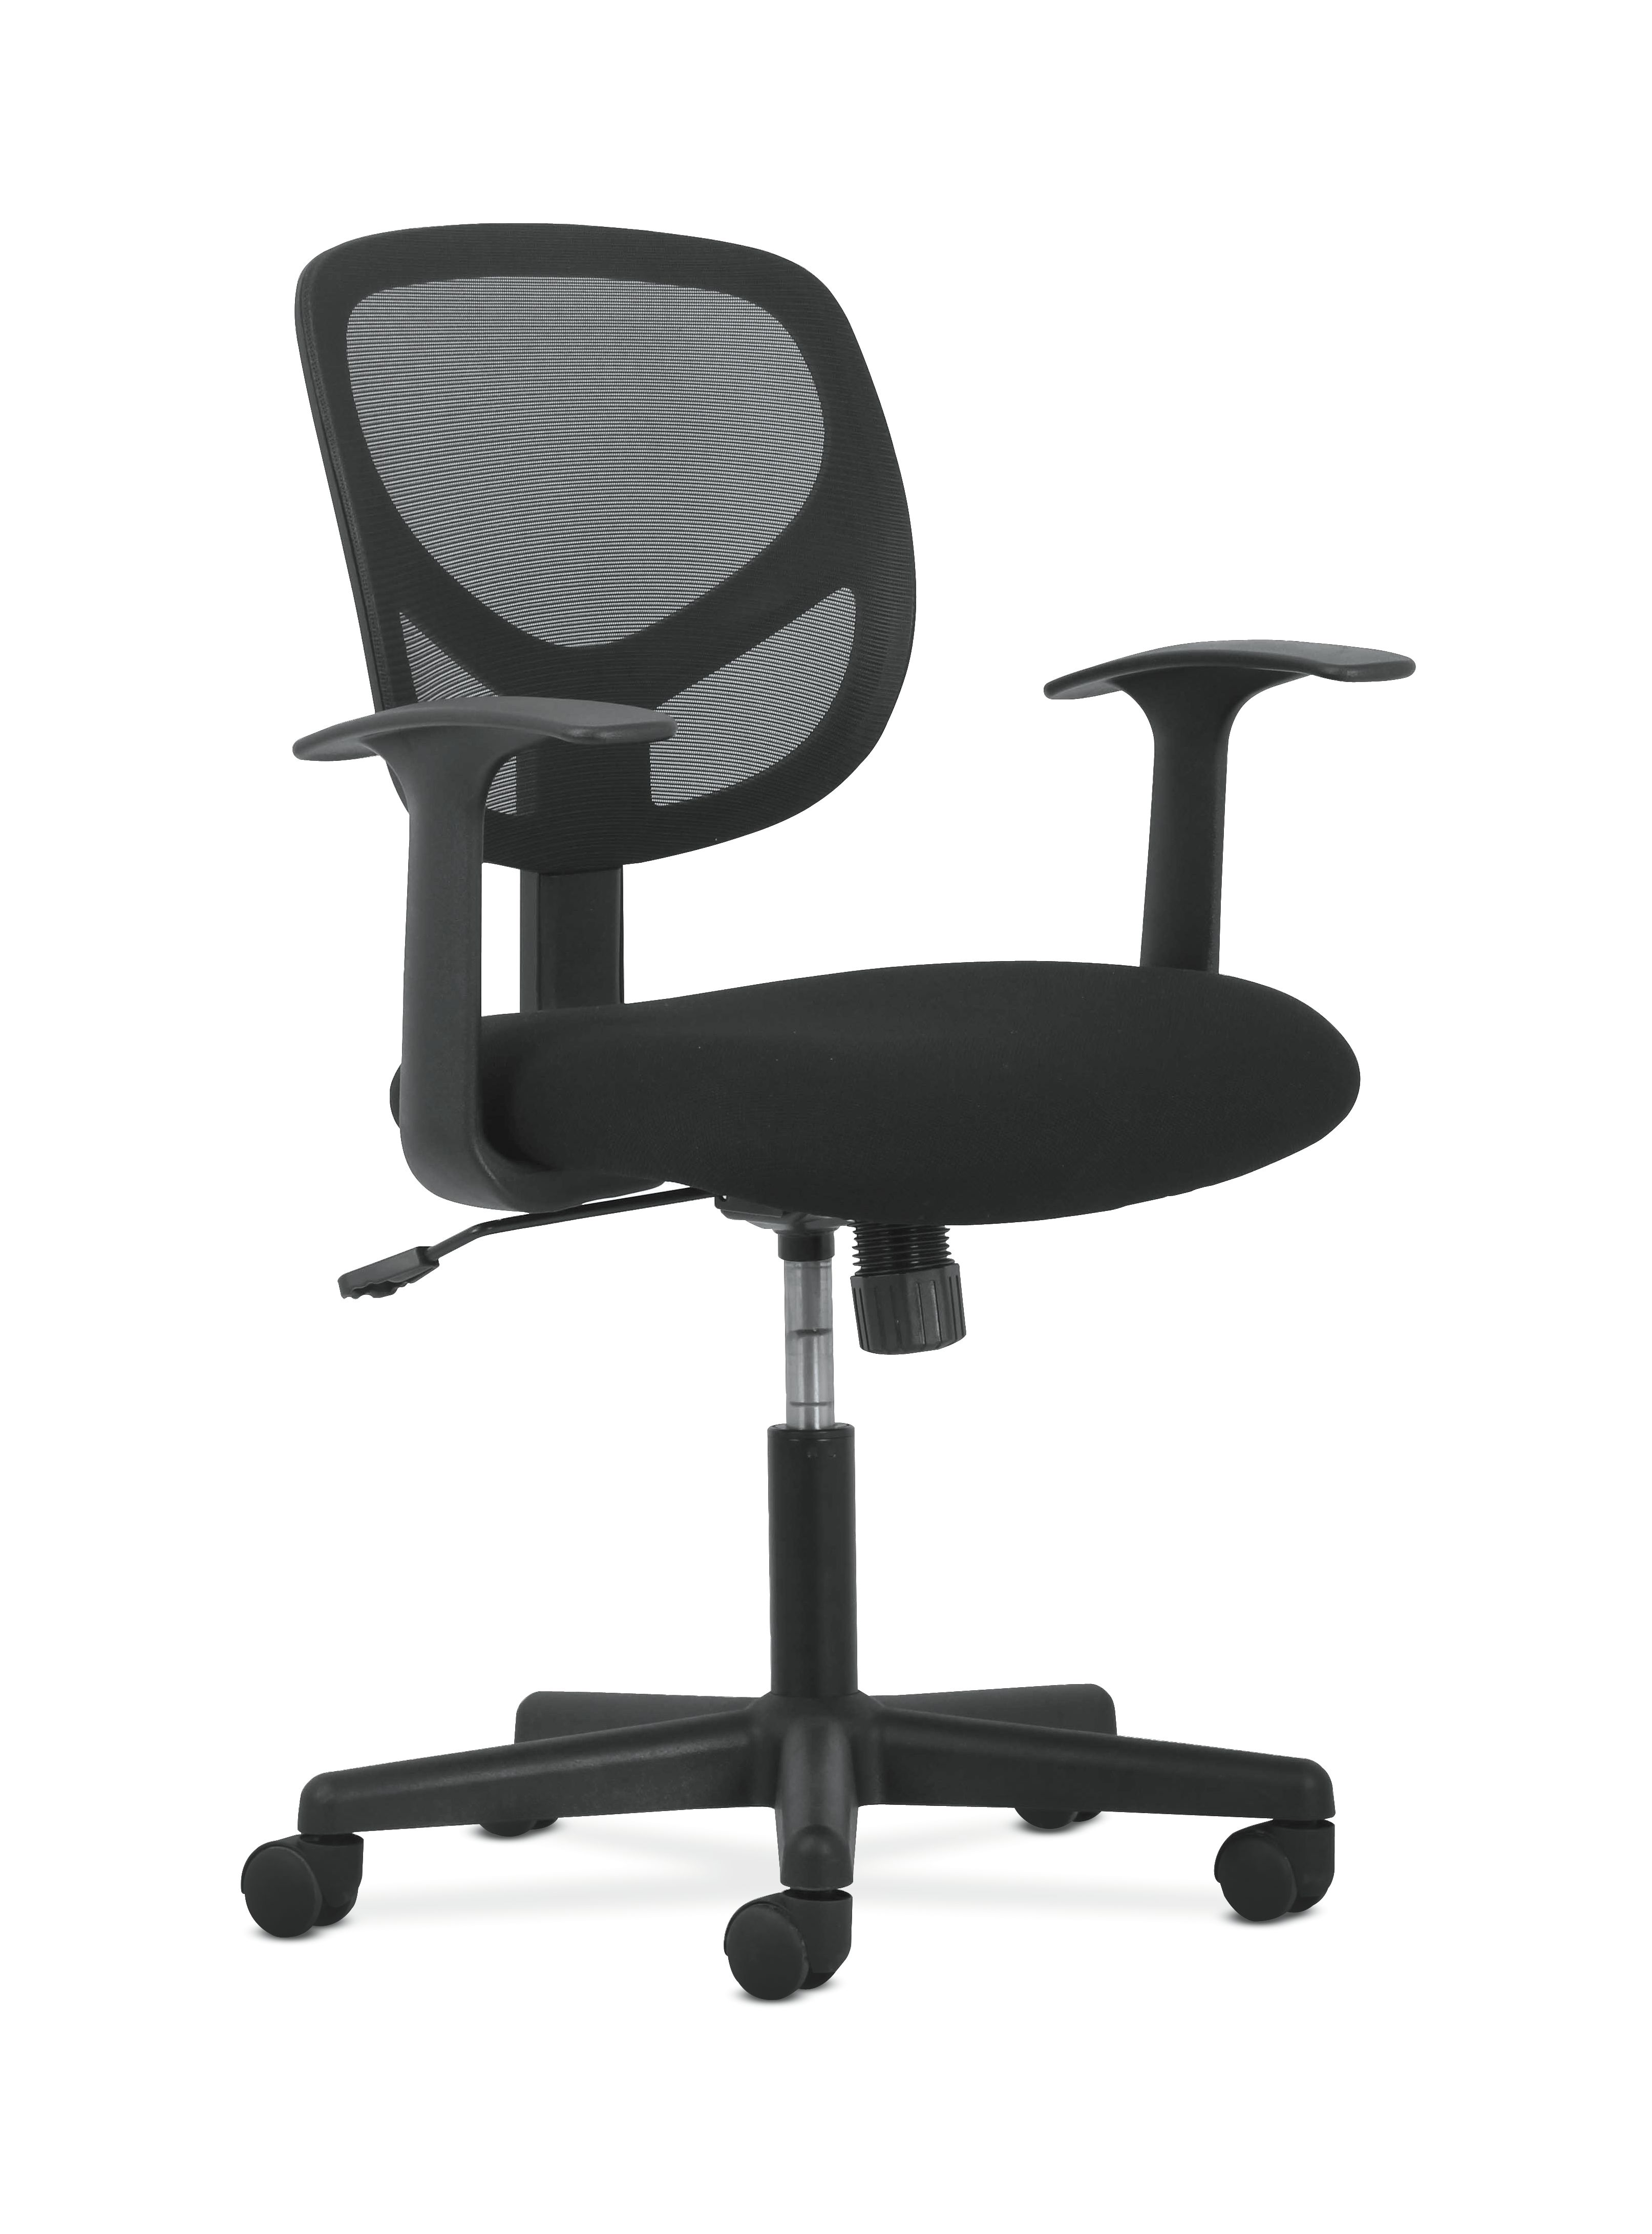 mesh task chair camping chairs heavy duty office essentials sadie swivel mid back with arms ergonomic computer